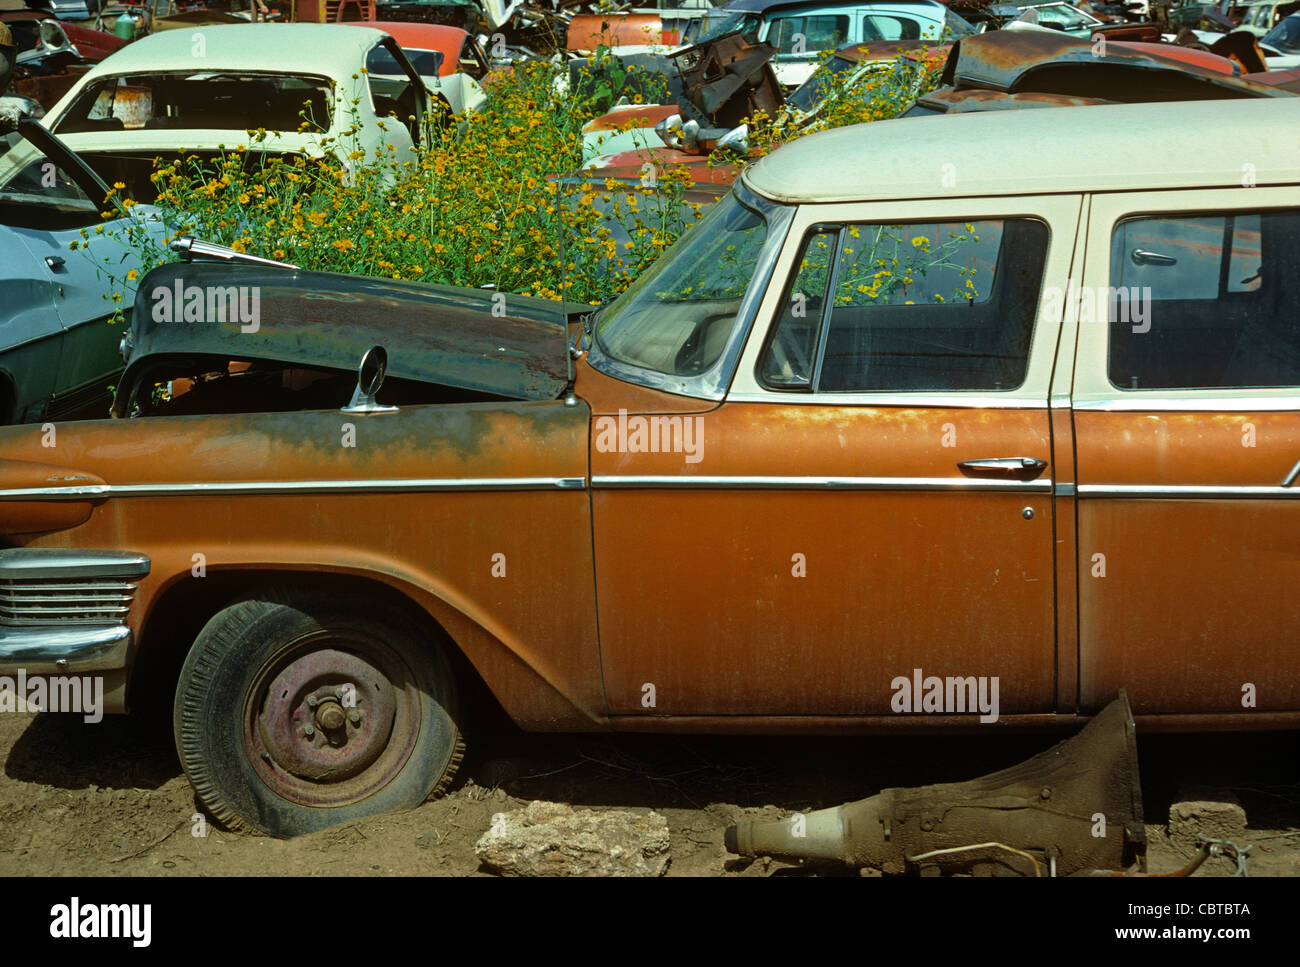 Abandoned cars in junkyard, Denver Colorado US Stock Photo: 41718106 ...